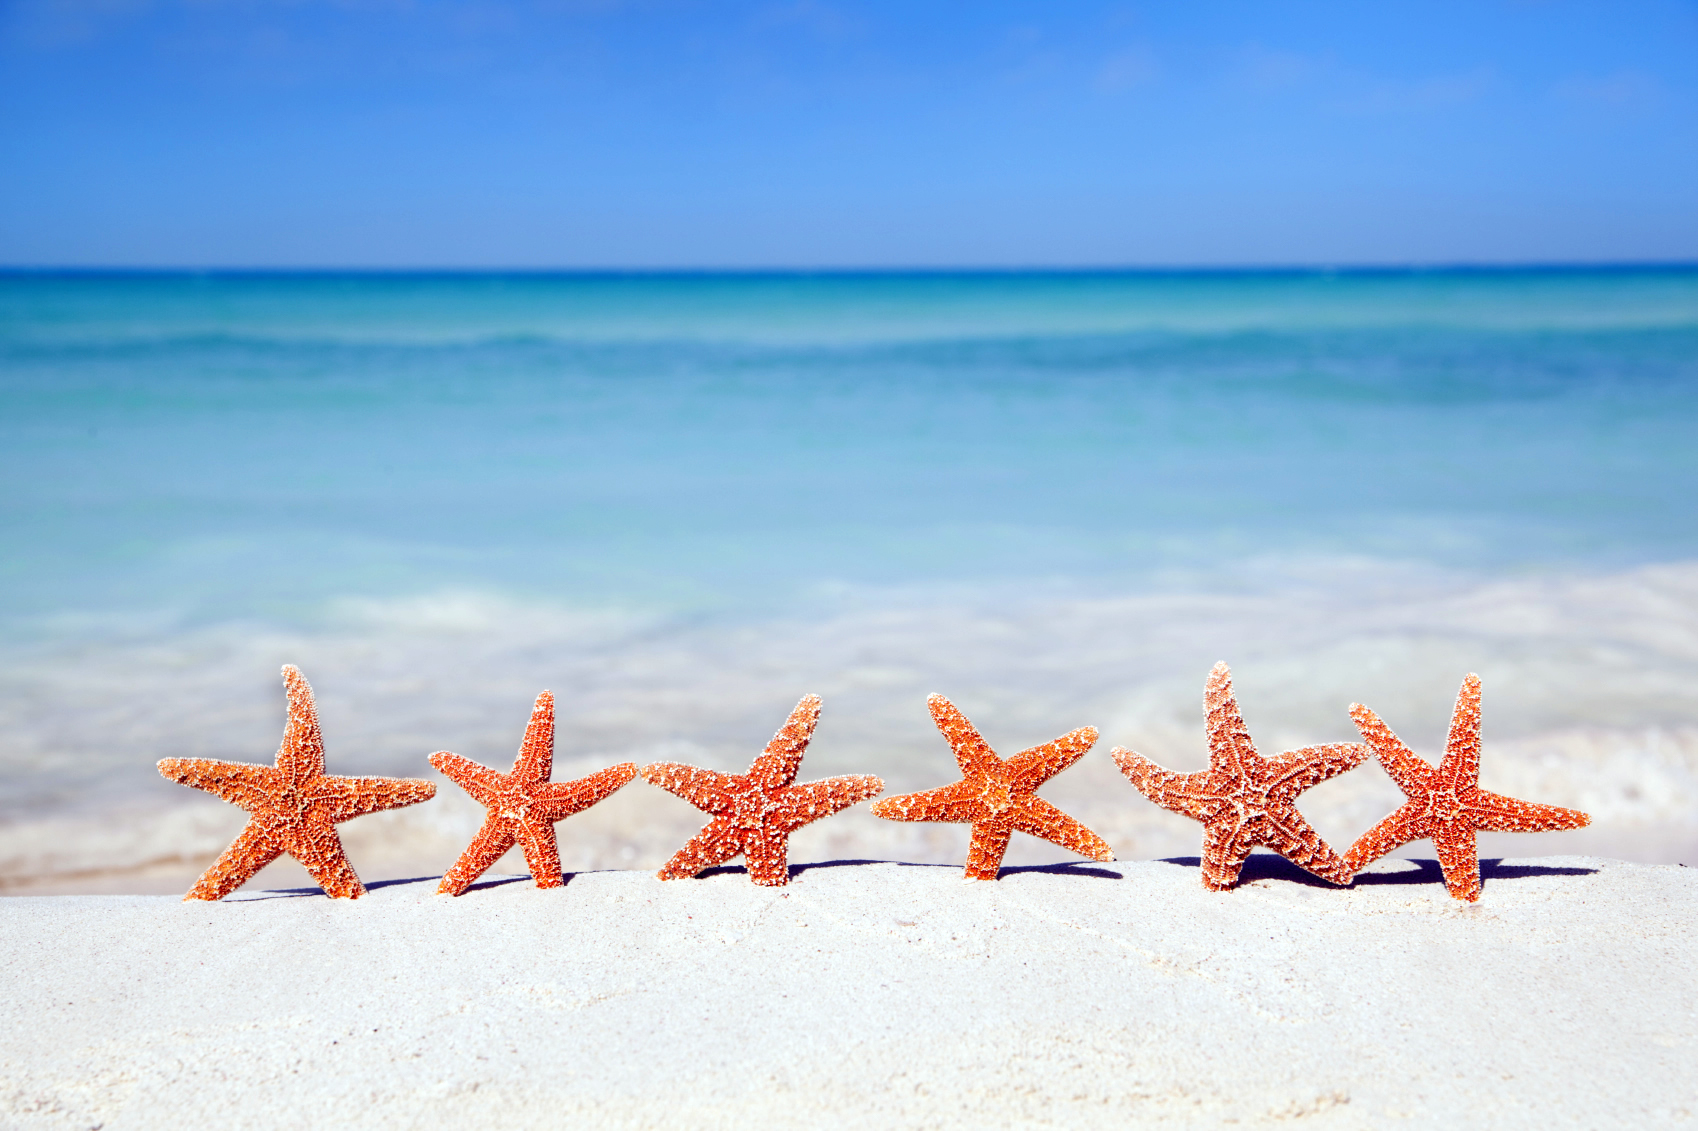 Starfish Wallpapers Images Photos Pictures Backgrounds HD Wallpapers Download Free Images Wallpaper [1000image.com]